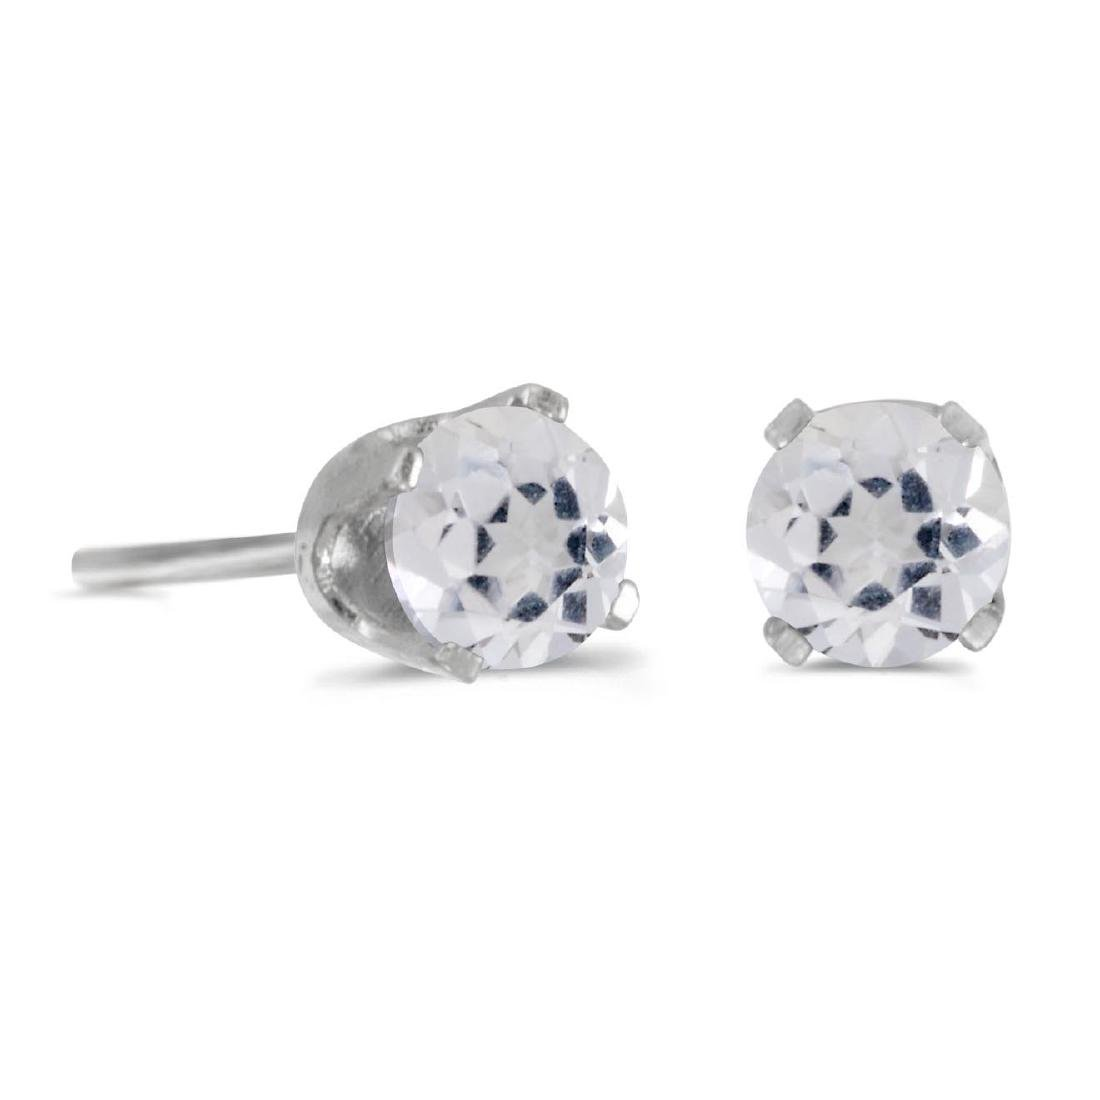 Certified 4 mm Round White Topaz Stud Earrings in Sterl